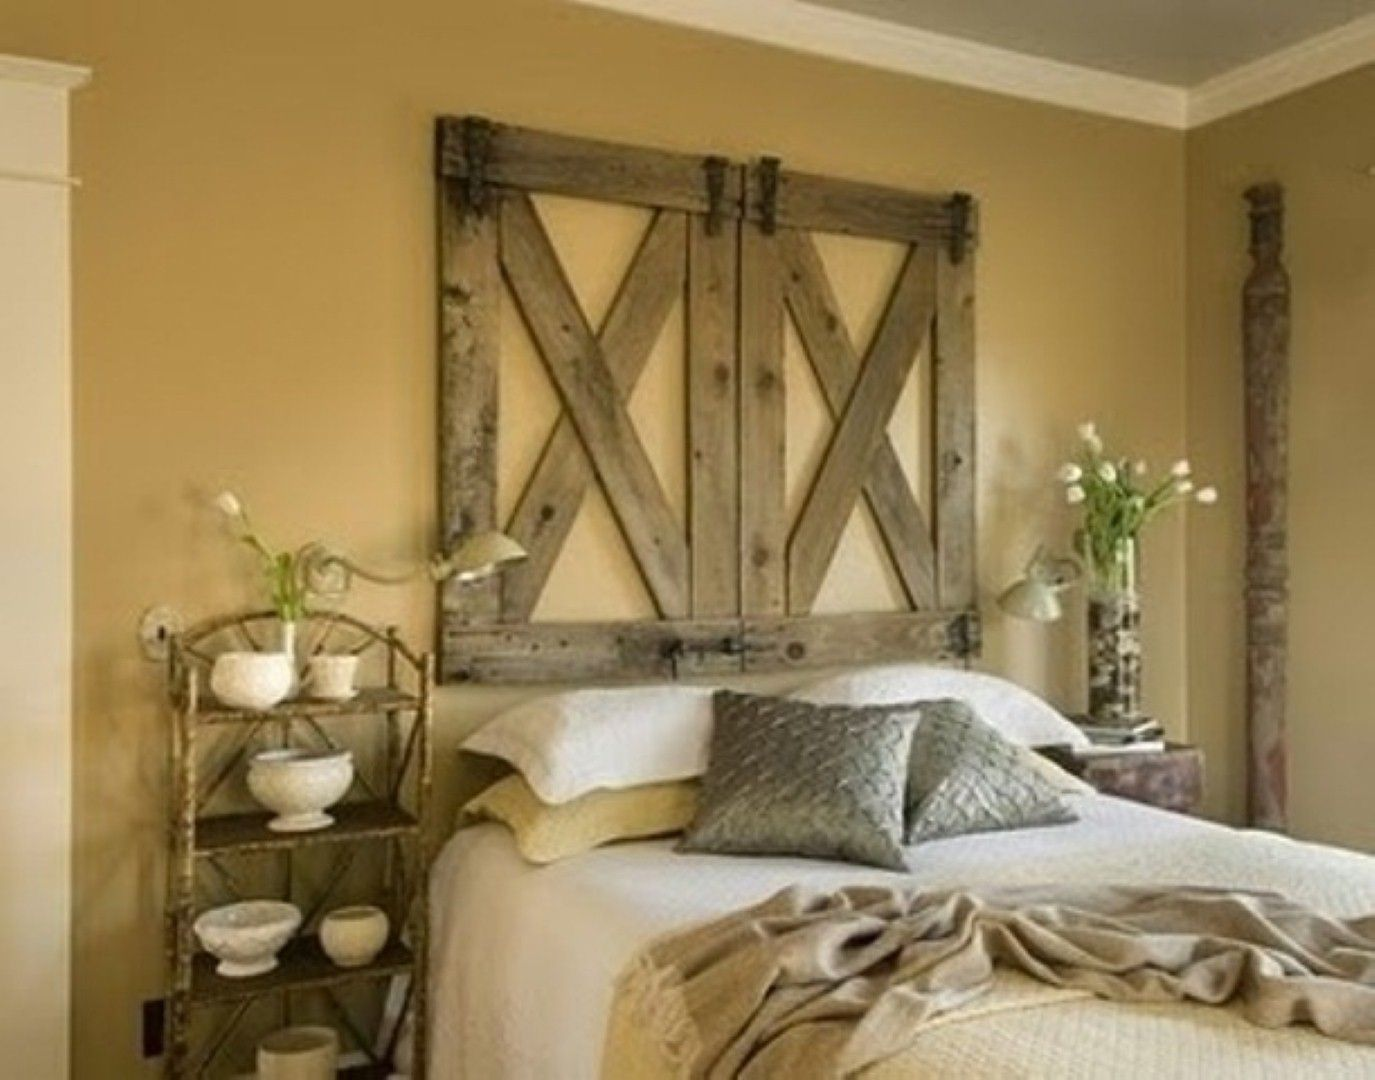 diy rustic bedroom ideas diy rustic decor | Better Homes ...